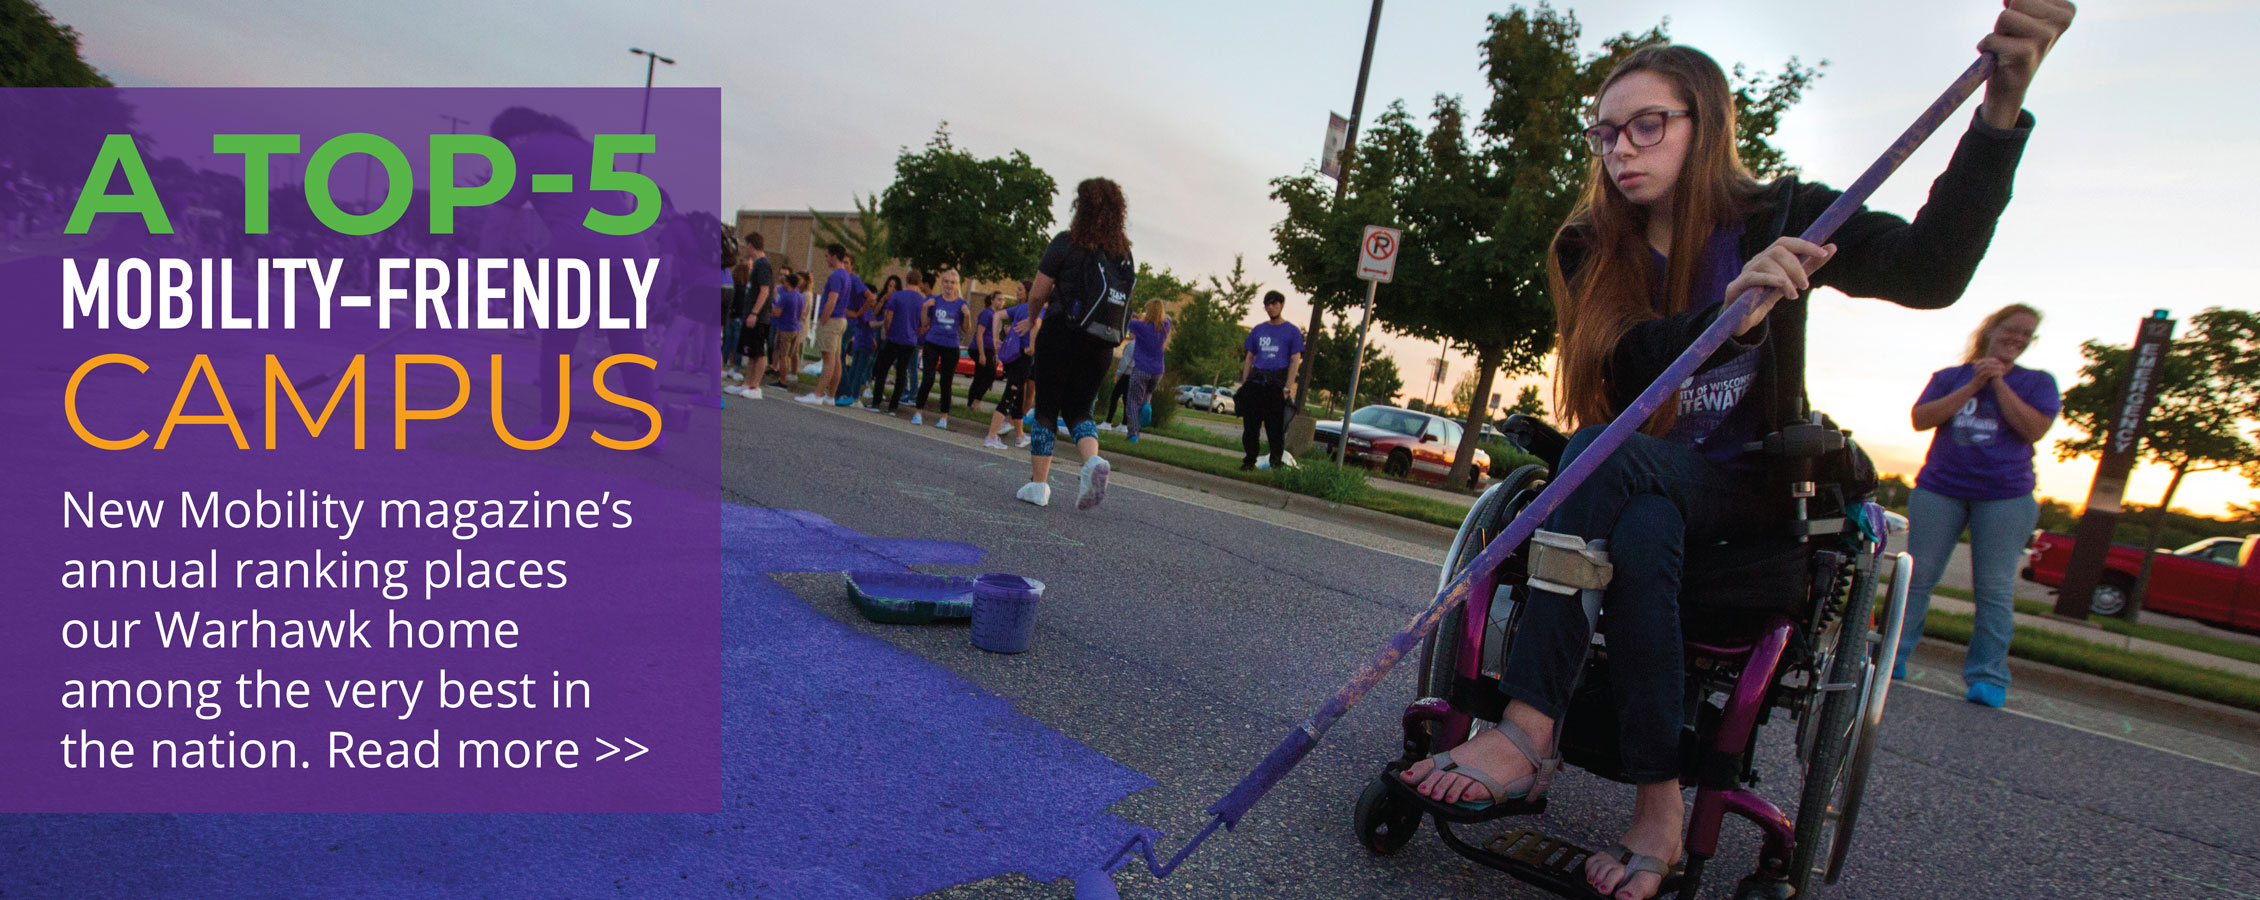 Student in a wheelchair paints Starin Road purple.